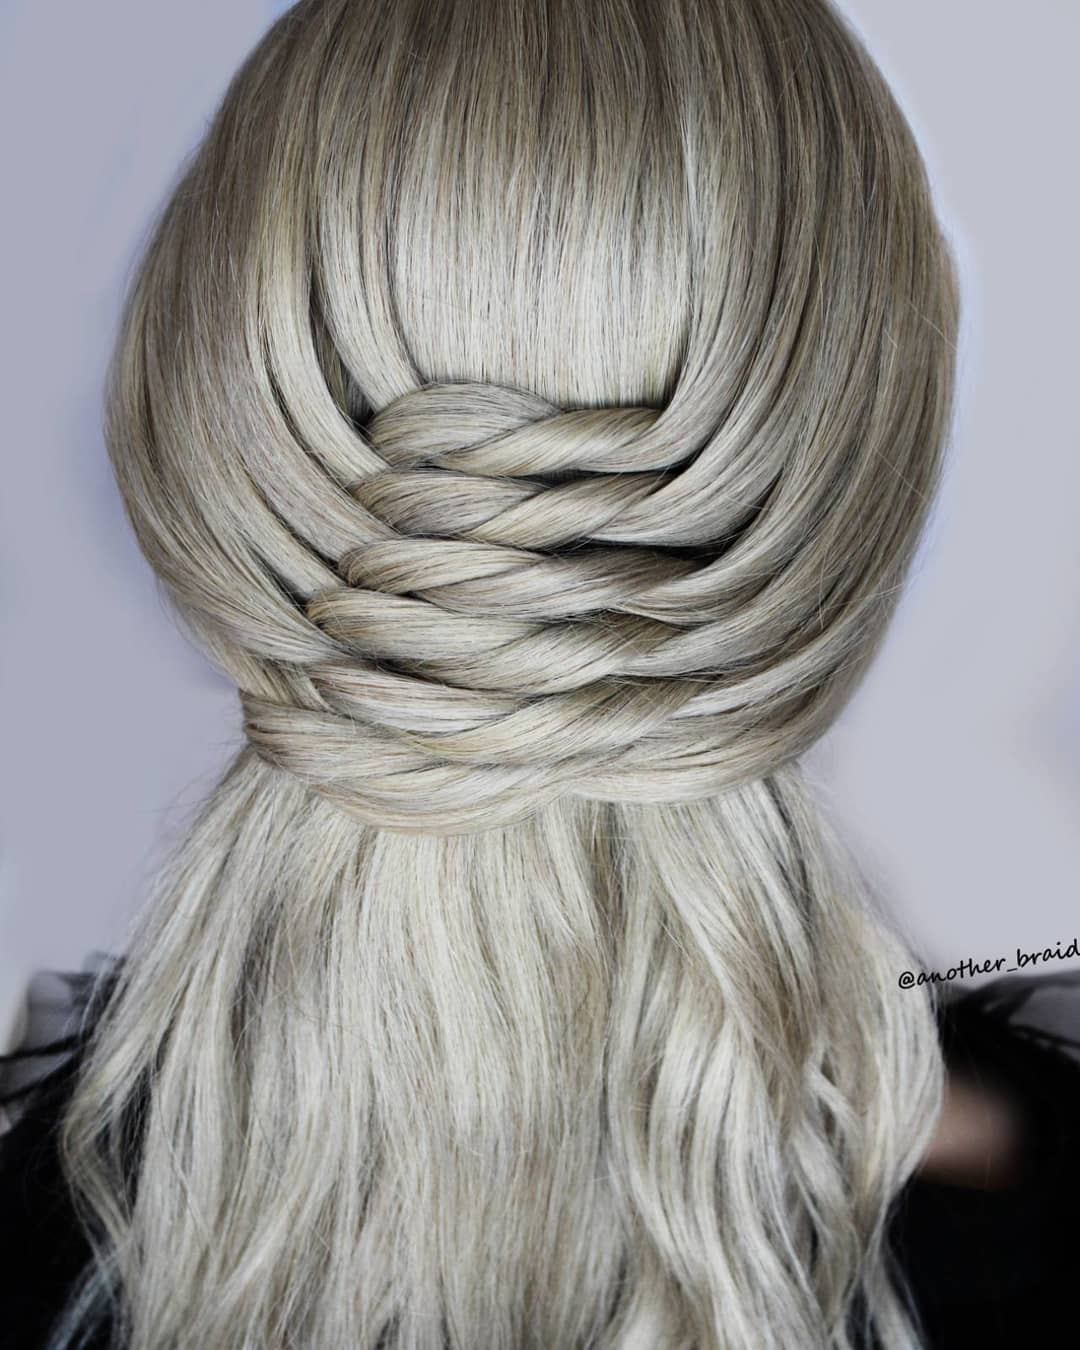 You Can Find The Tutorial For This 1 Min Braidingvideo - Hair Tutorial